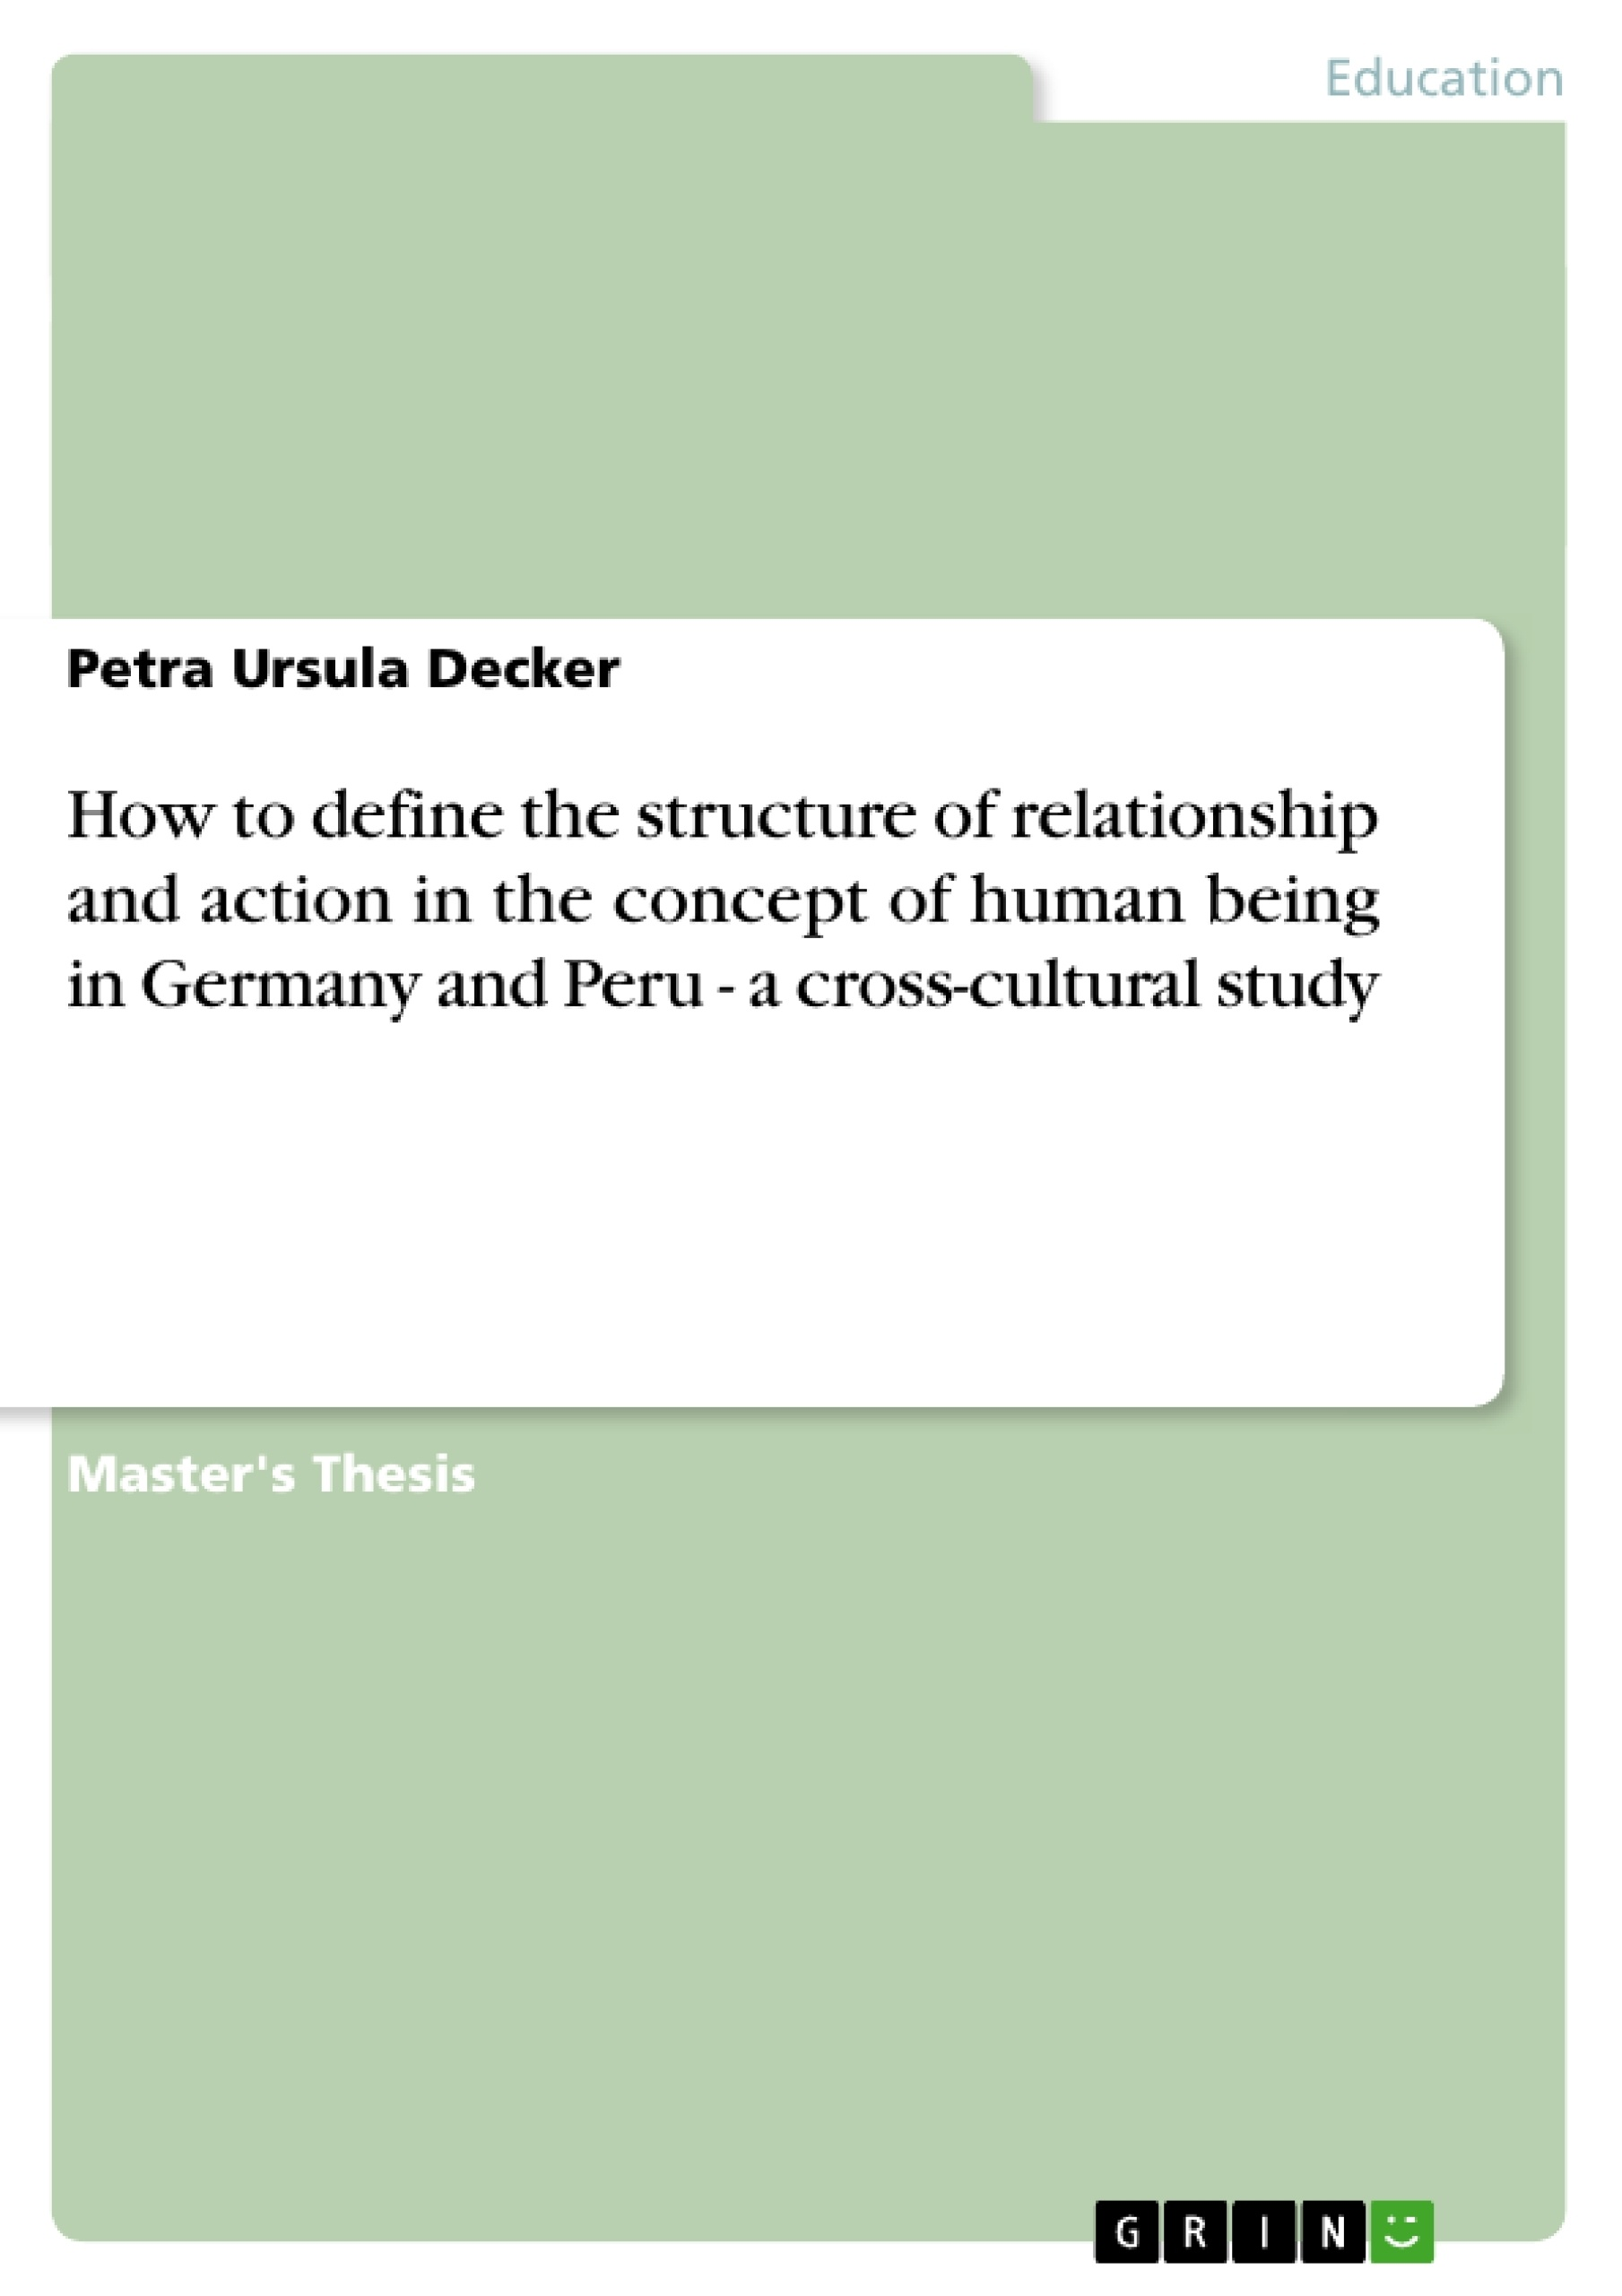 Title: How to define the structure of relationship and action in the concept of human being in Germany and Peru - a cross-cultural study